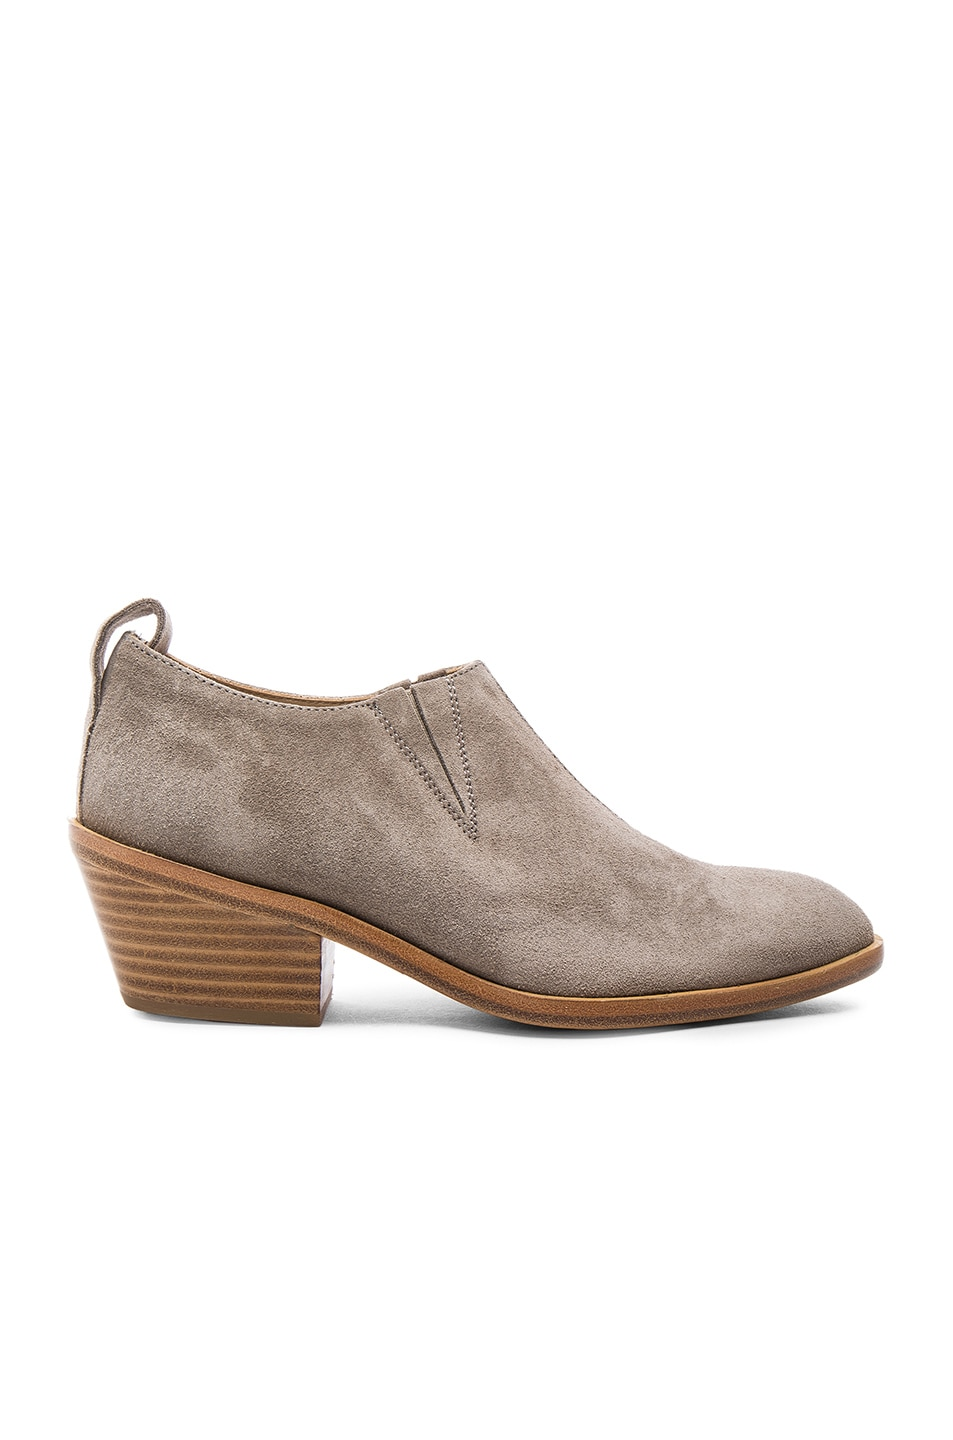 Image 1 of Rag & Bone Suede Thompson Boots in Warm Grey Suede